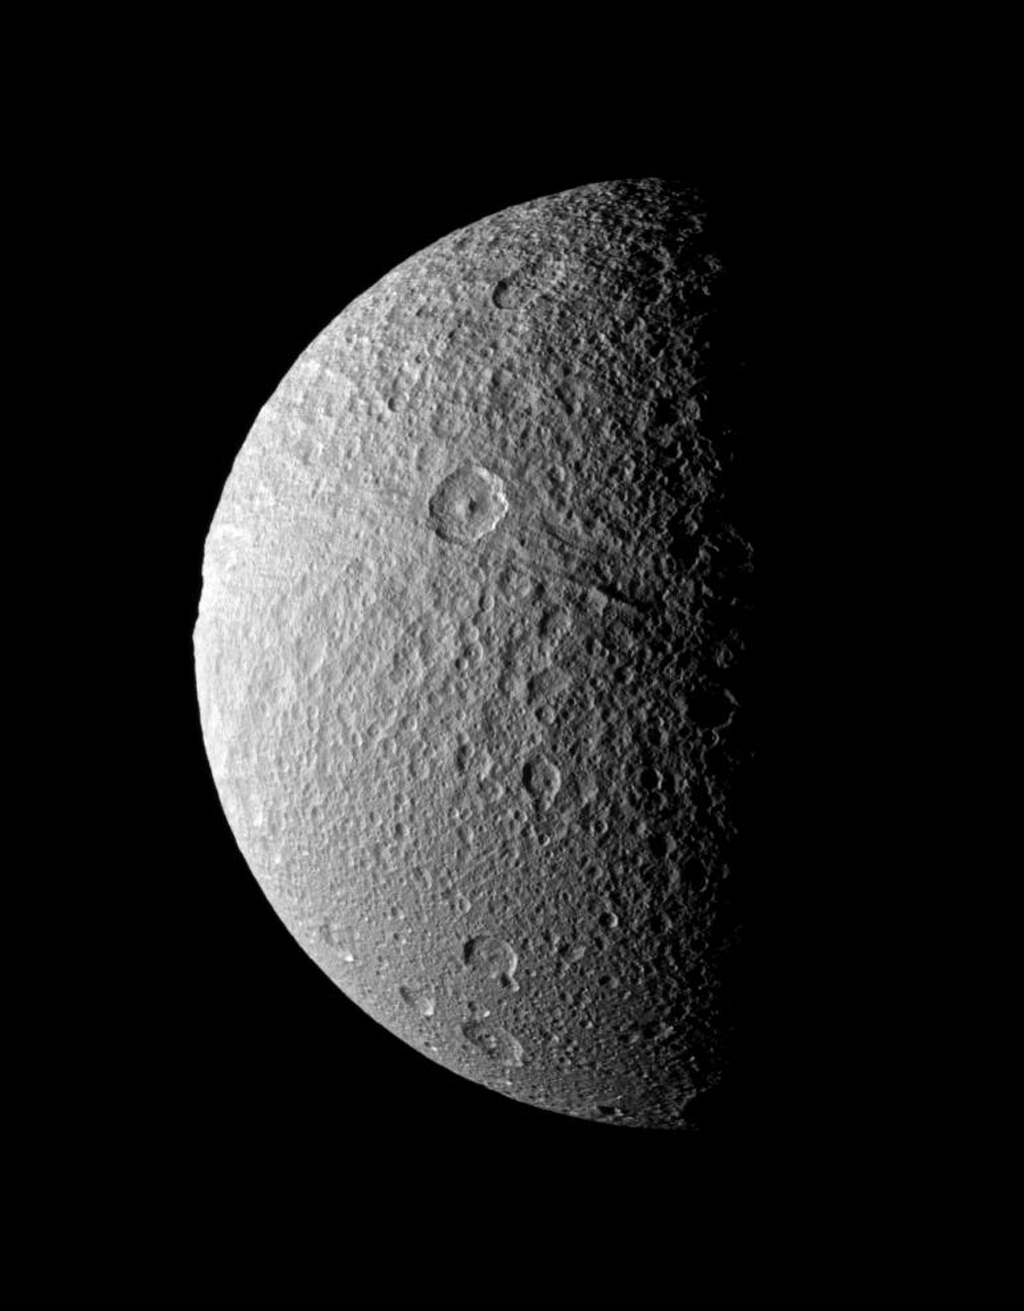 Ithaca Chasma, an enormous rift that stretches from north to south across the face of Tethys, seemingly takes a bite out of the moon's limb in this image from NASA's Cassini spacecraft taken on Dec. 9, 2008.